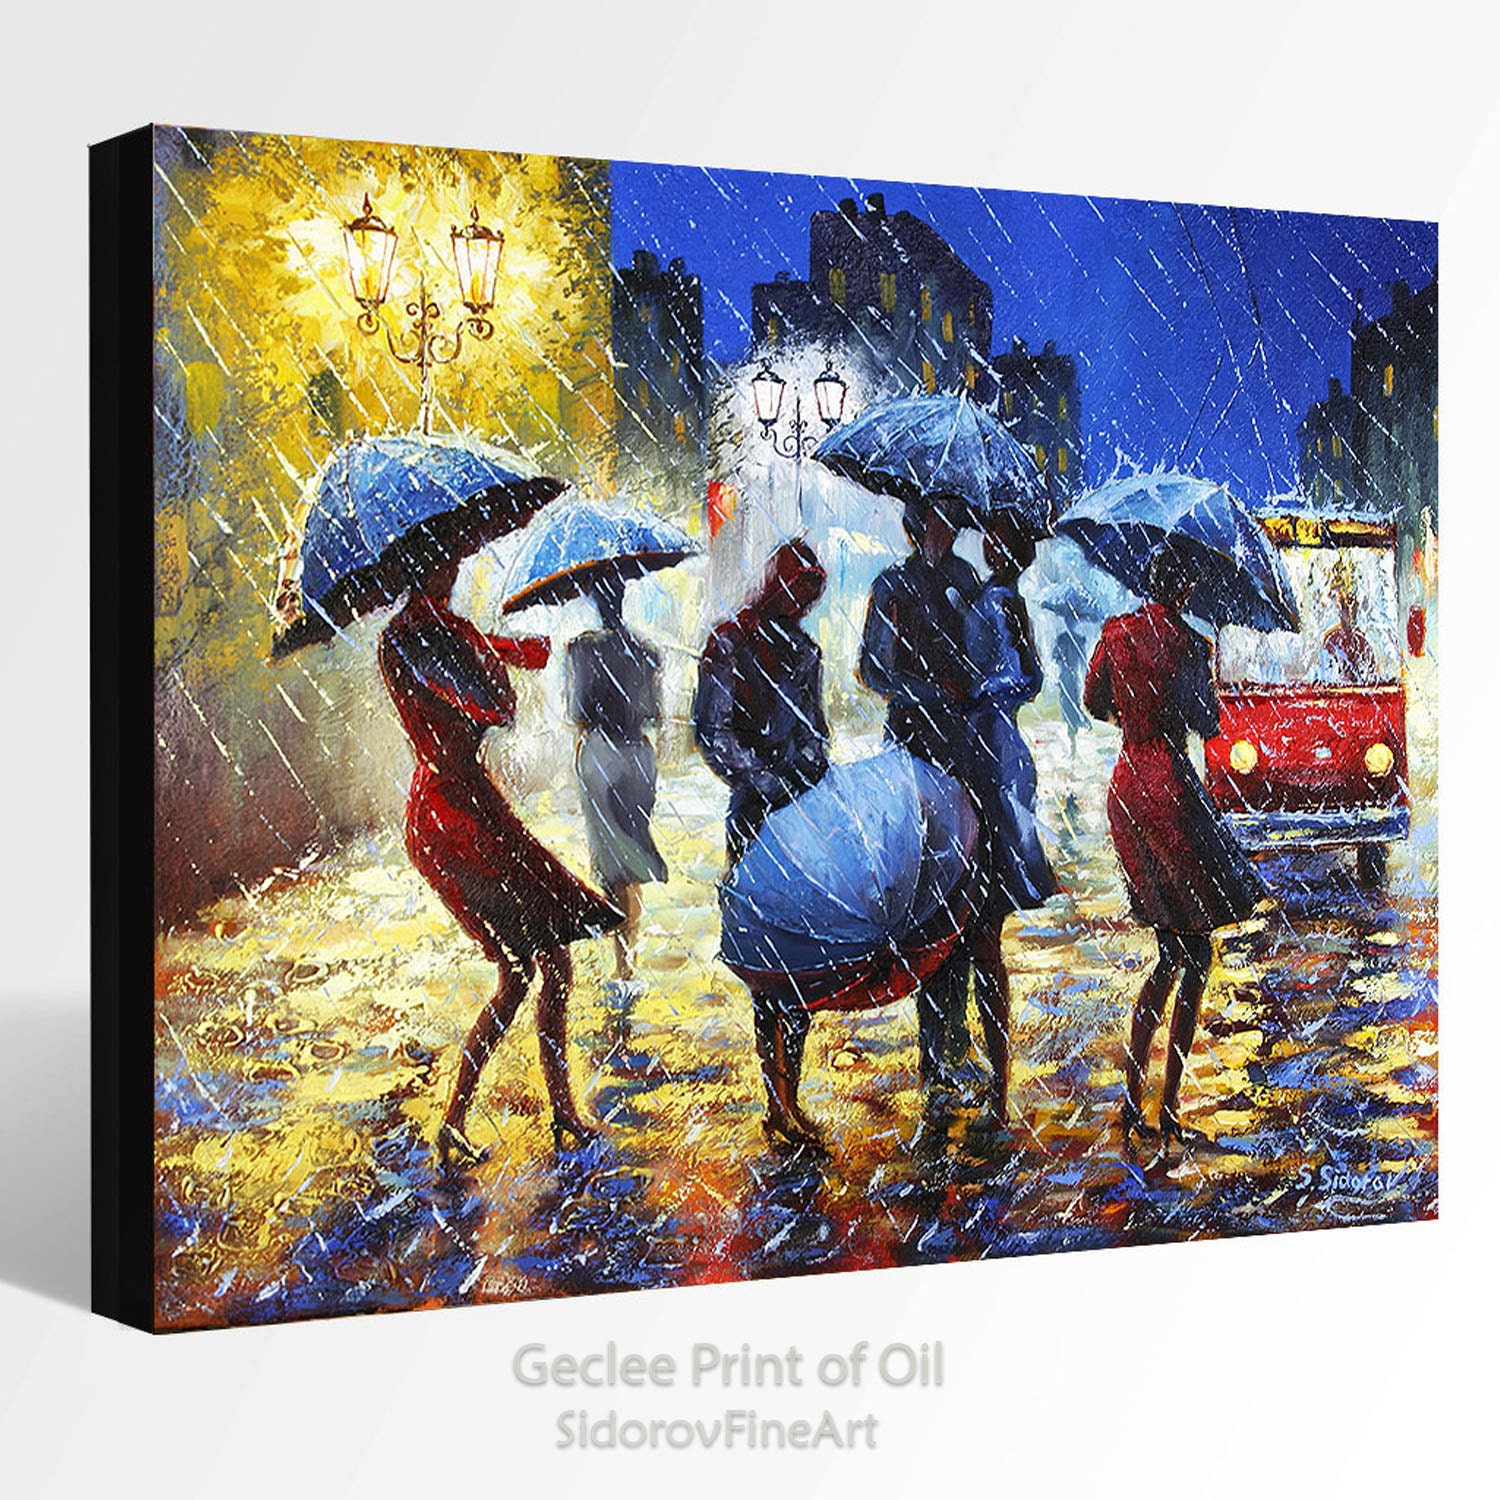 oil painting giclee print canvas fine art print of original